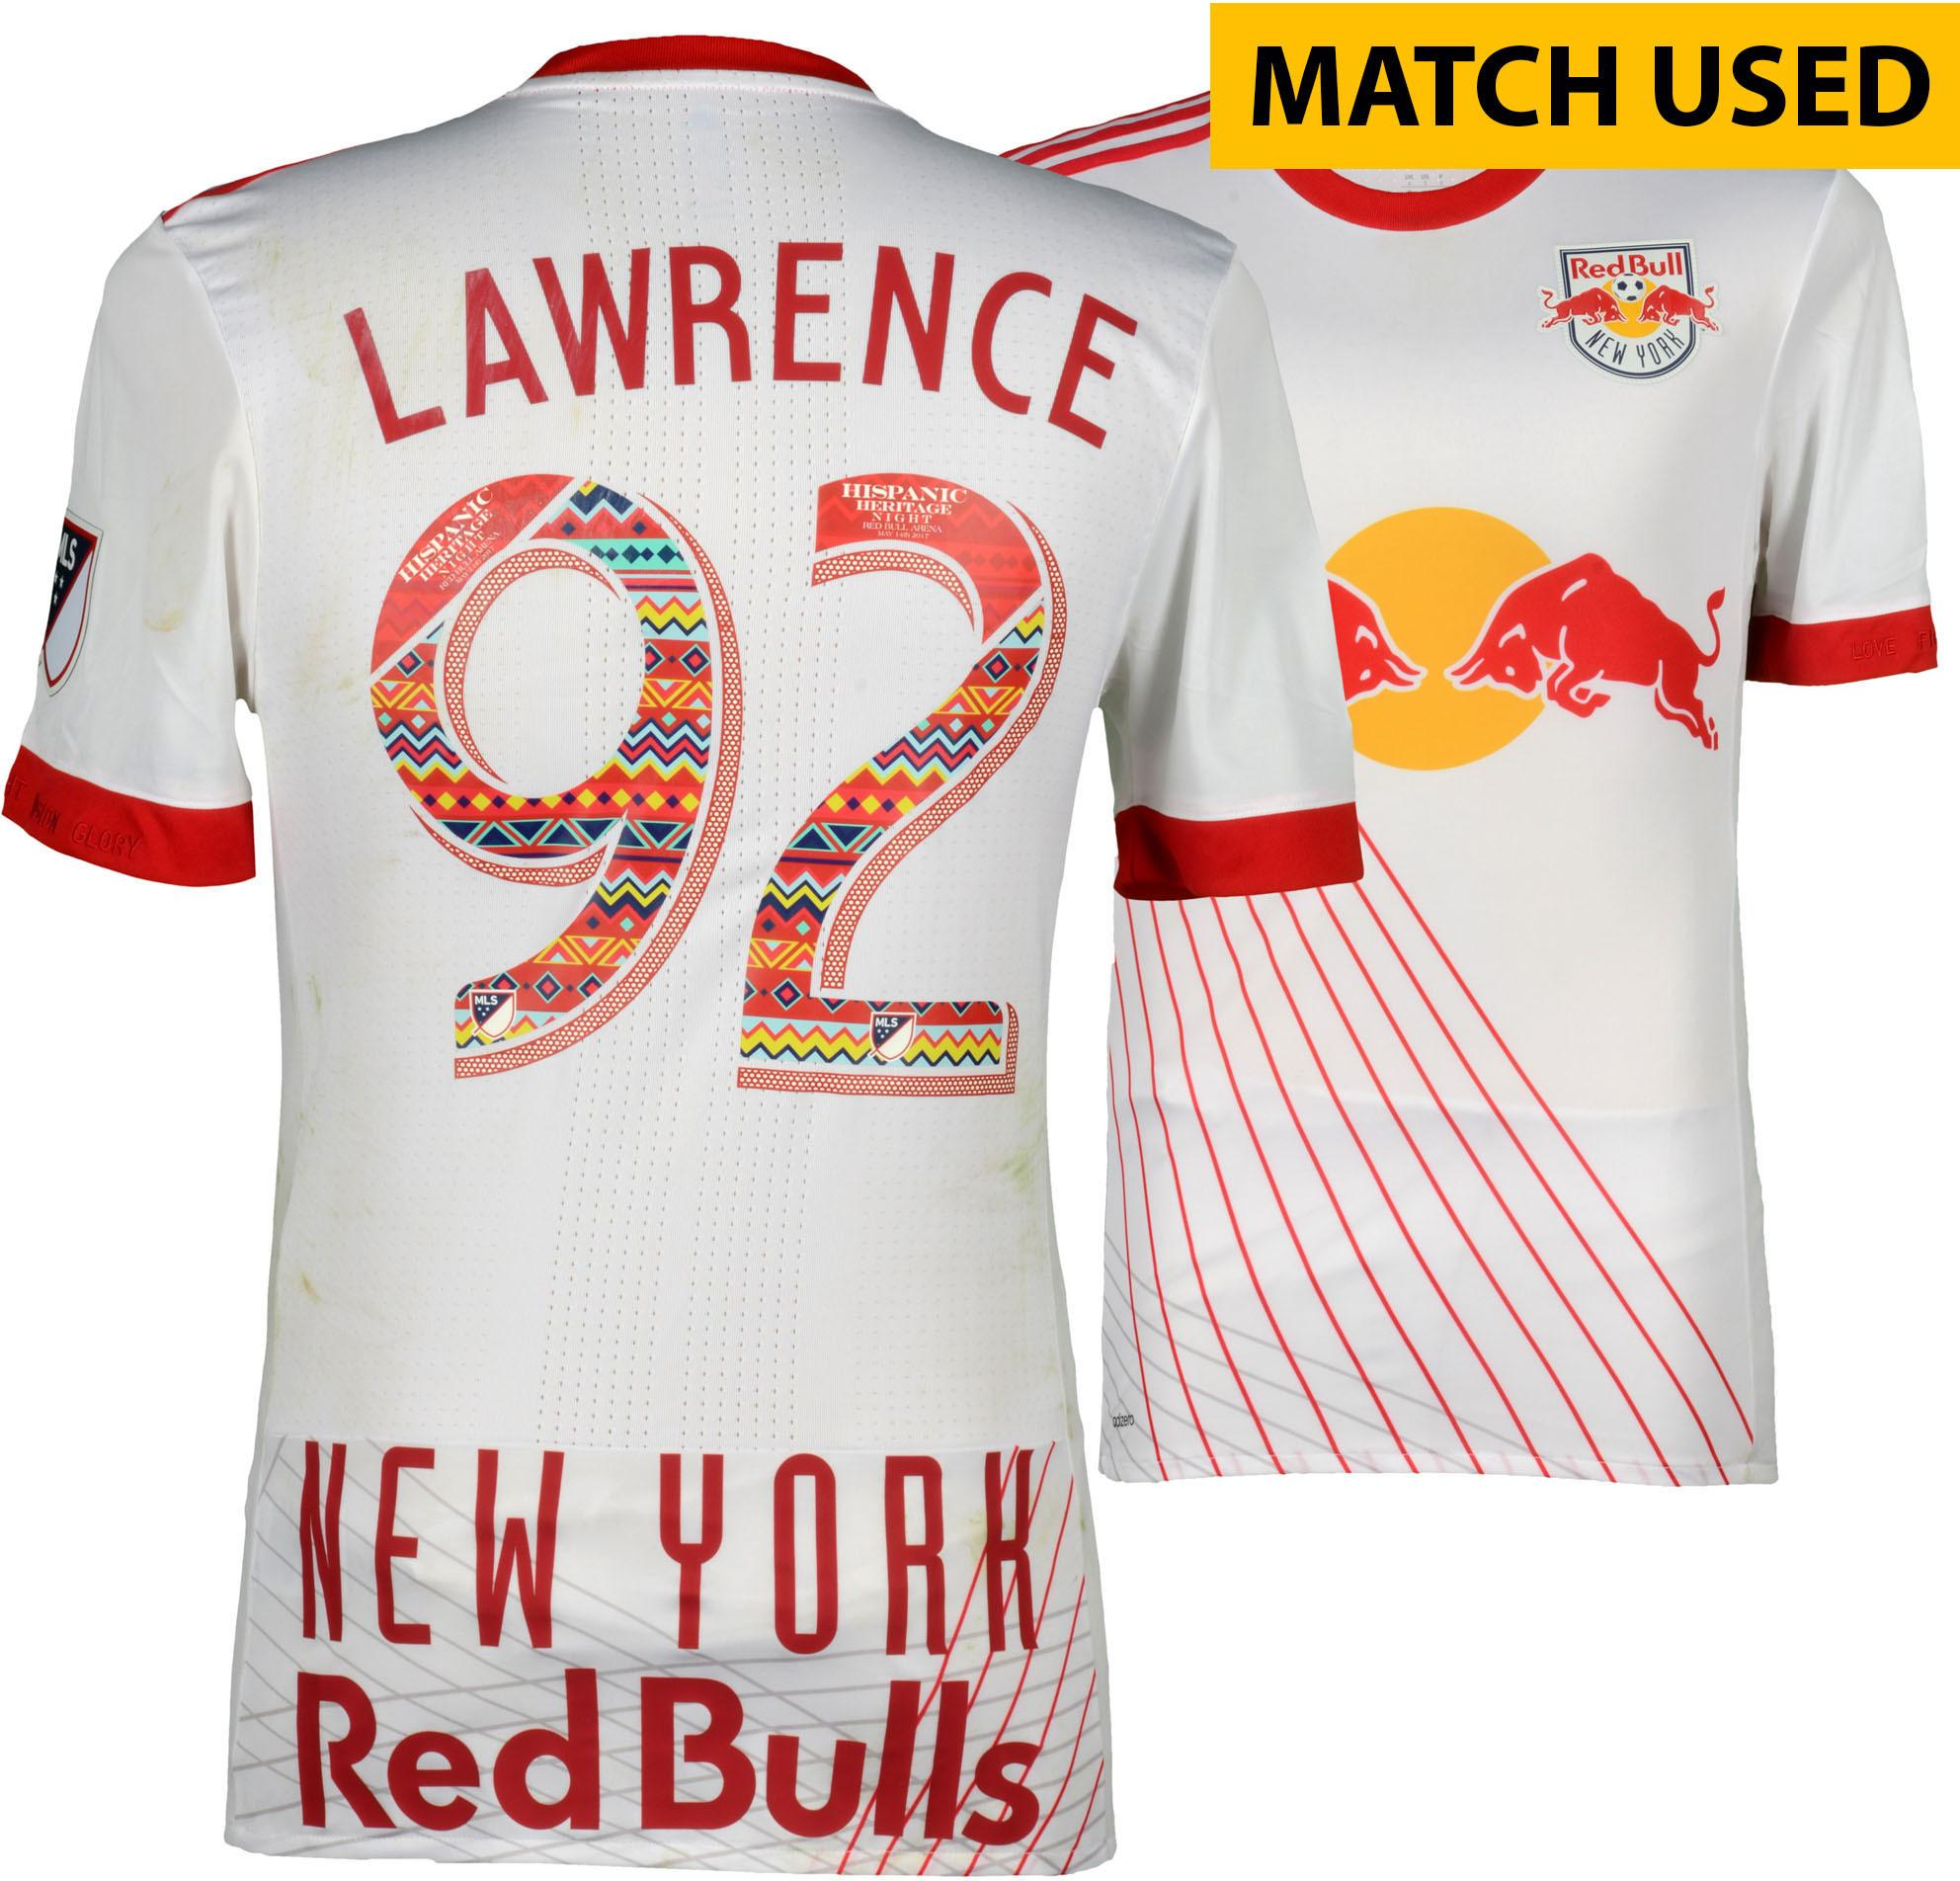 new concept c1c98 60de0 Kemar Lawrence New York Red Bulls Match-Used #92 White Jersey Worn During  First Half of Hispanic Heritage Night vs. L.A. Galaxy on May 14, 2017 - ...